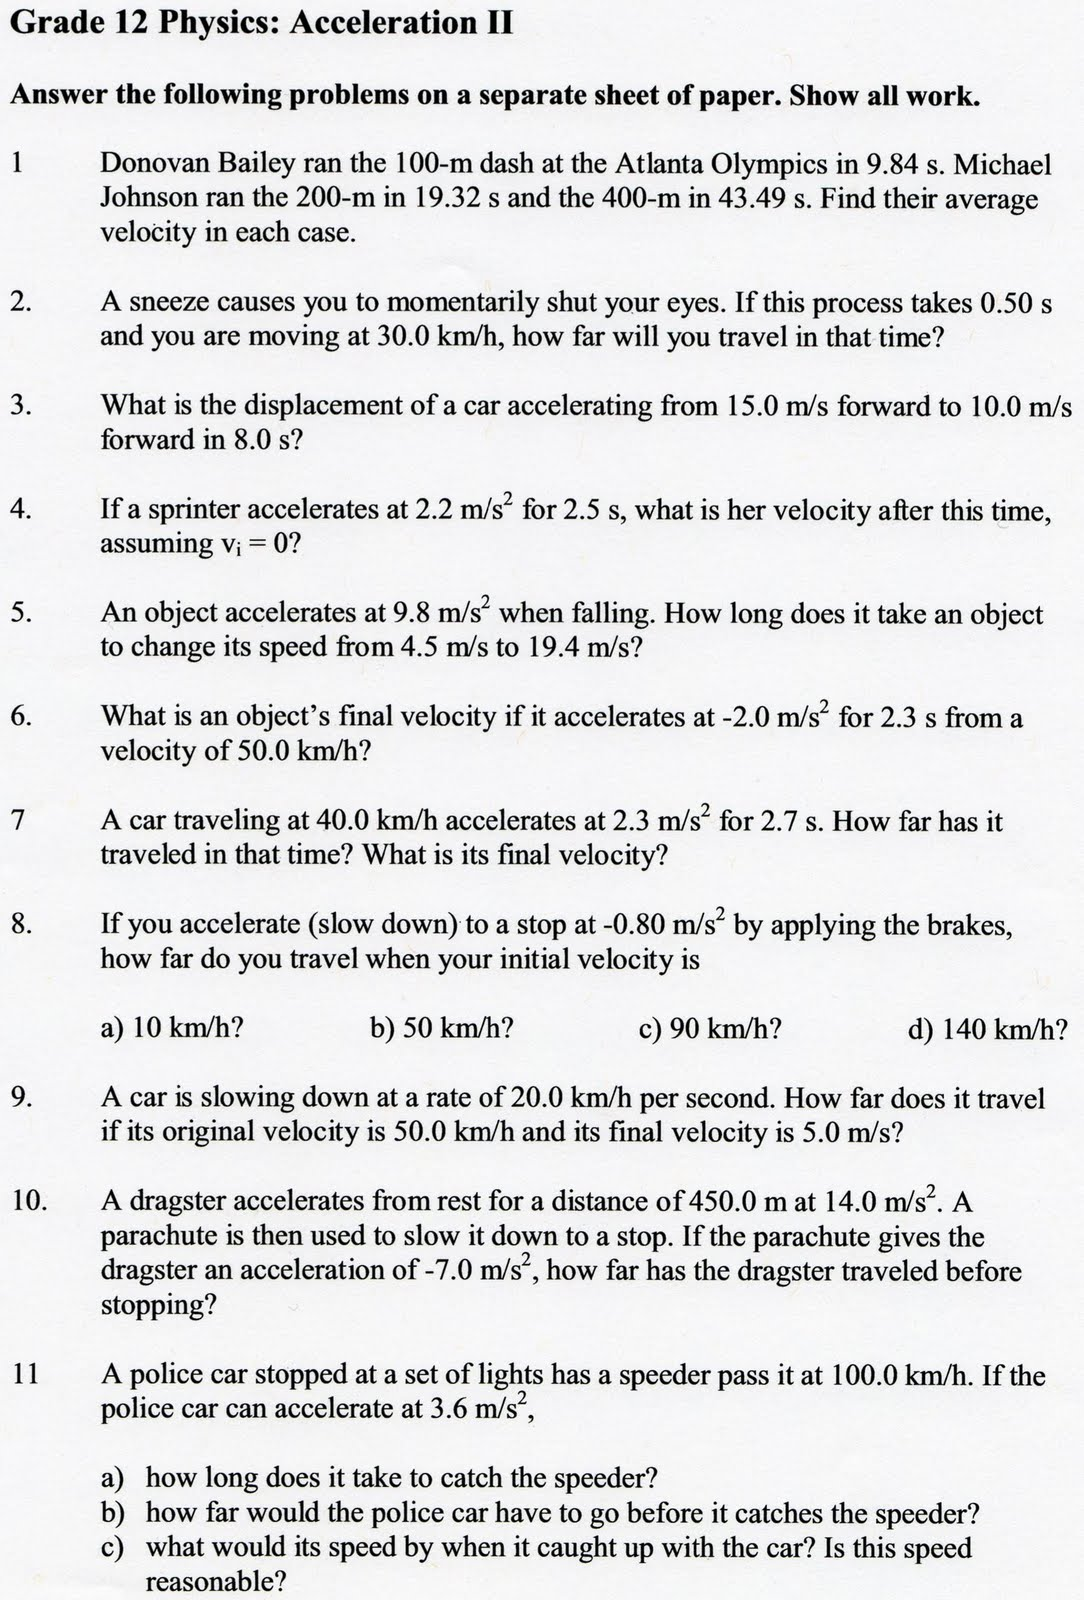 Worksheets Velocity And Acceleration Calculation Worksheet Answers velocity and acceleration calculation worksheets answer key